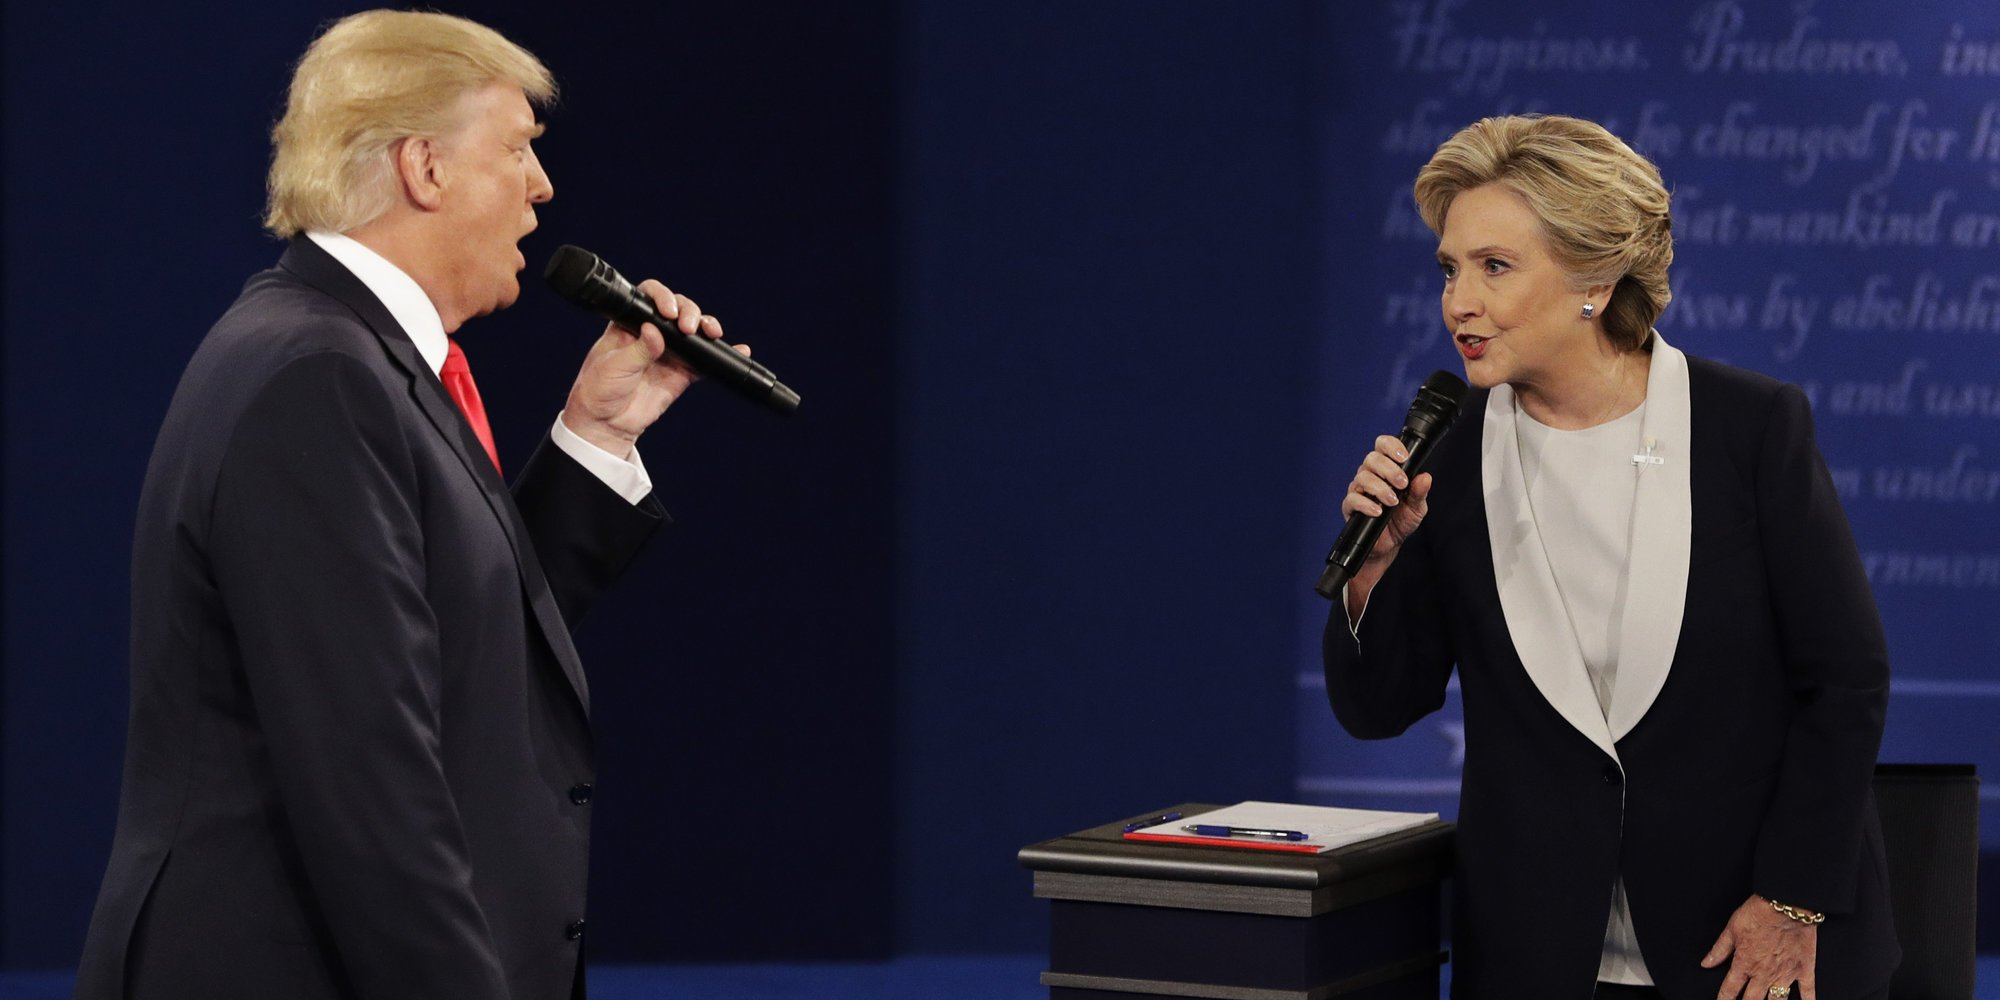 Donald Trump and Hilary Clinton with microphones arguing during the second presidential debate